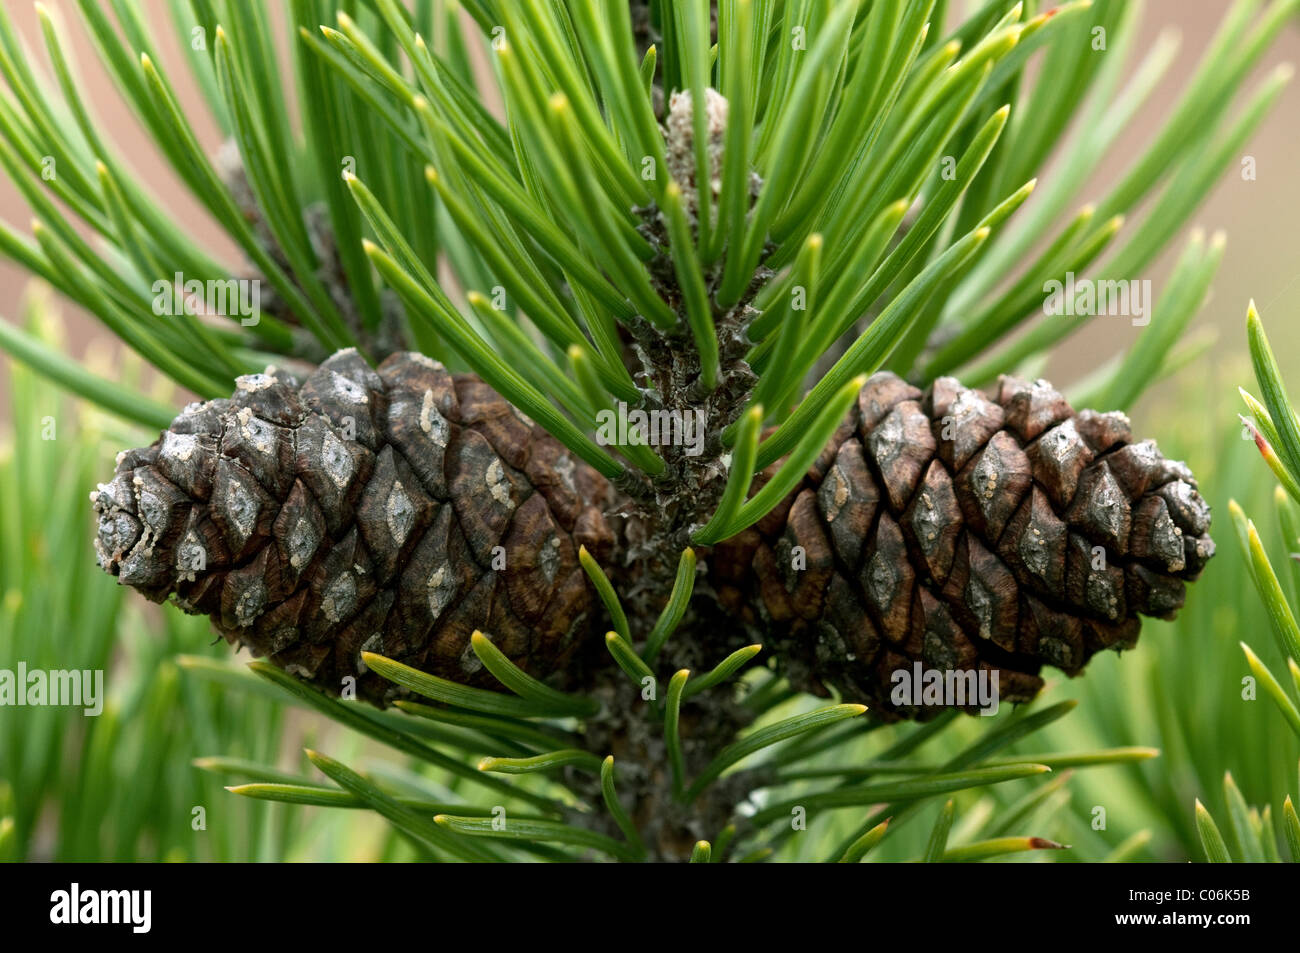 Dwarf Mountain Pine, Mountain Pine (Pinus mugo mugo). Two cones on a twig. - Stock Image